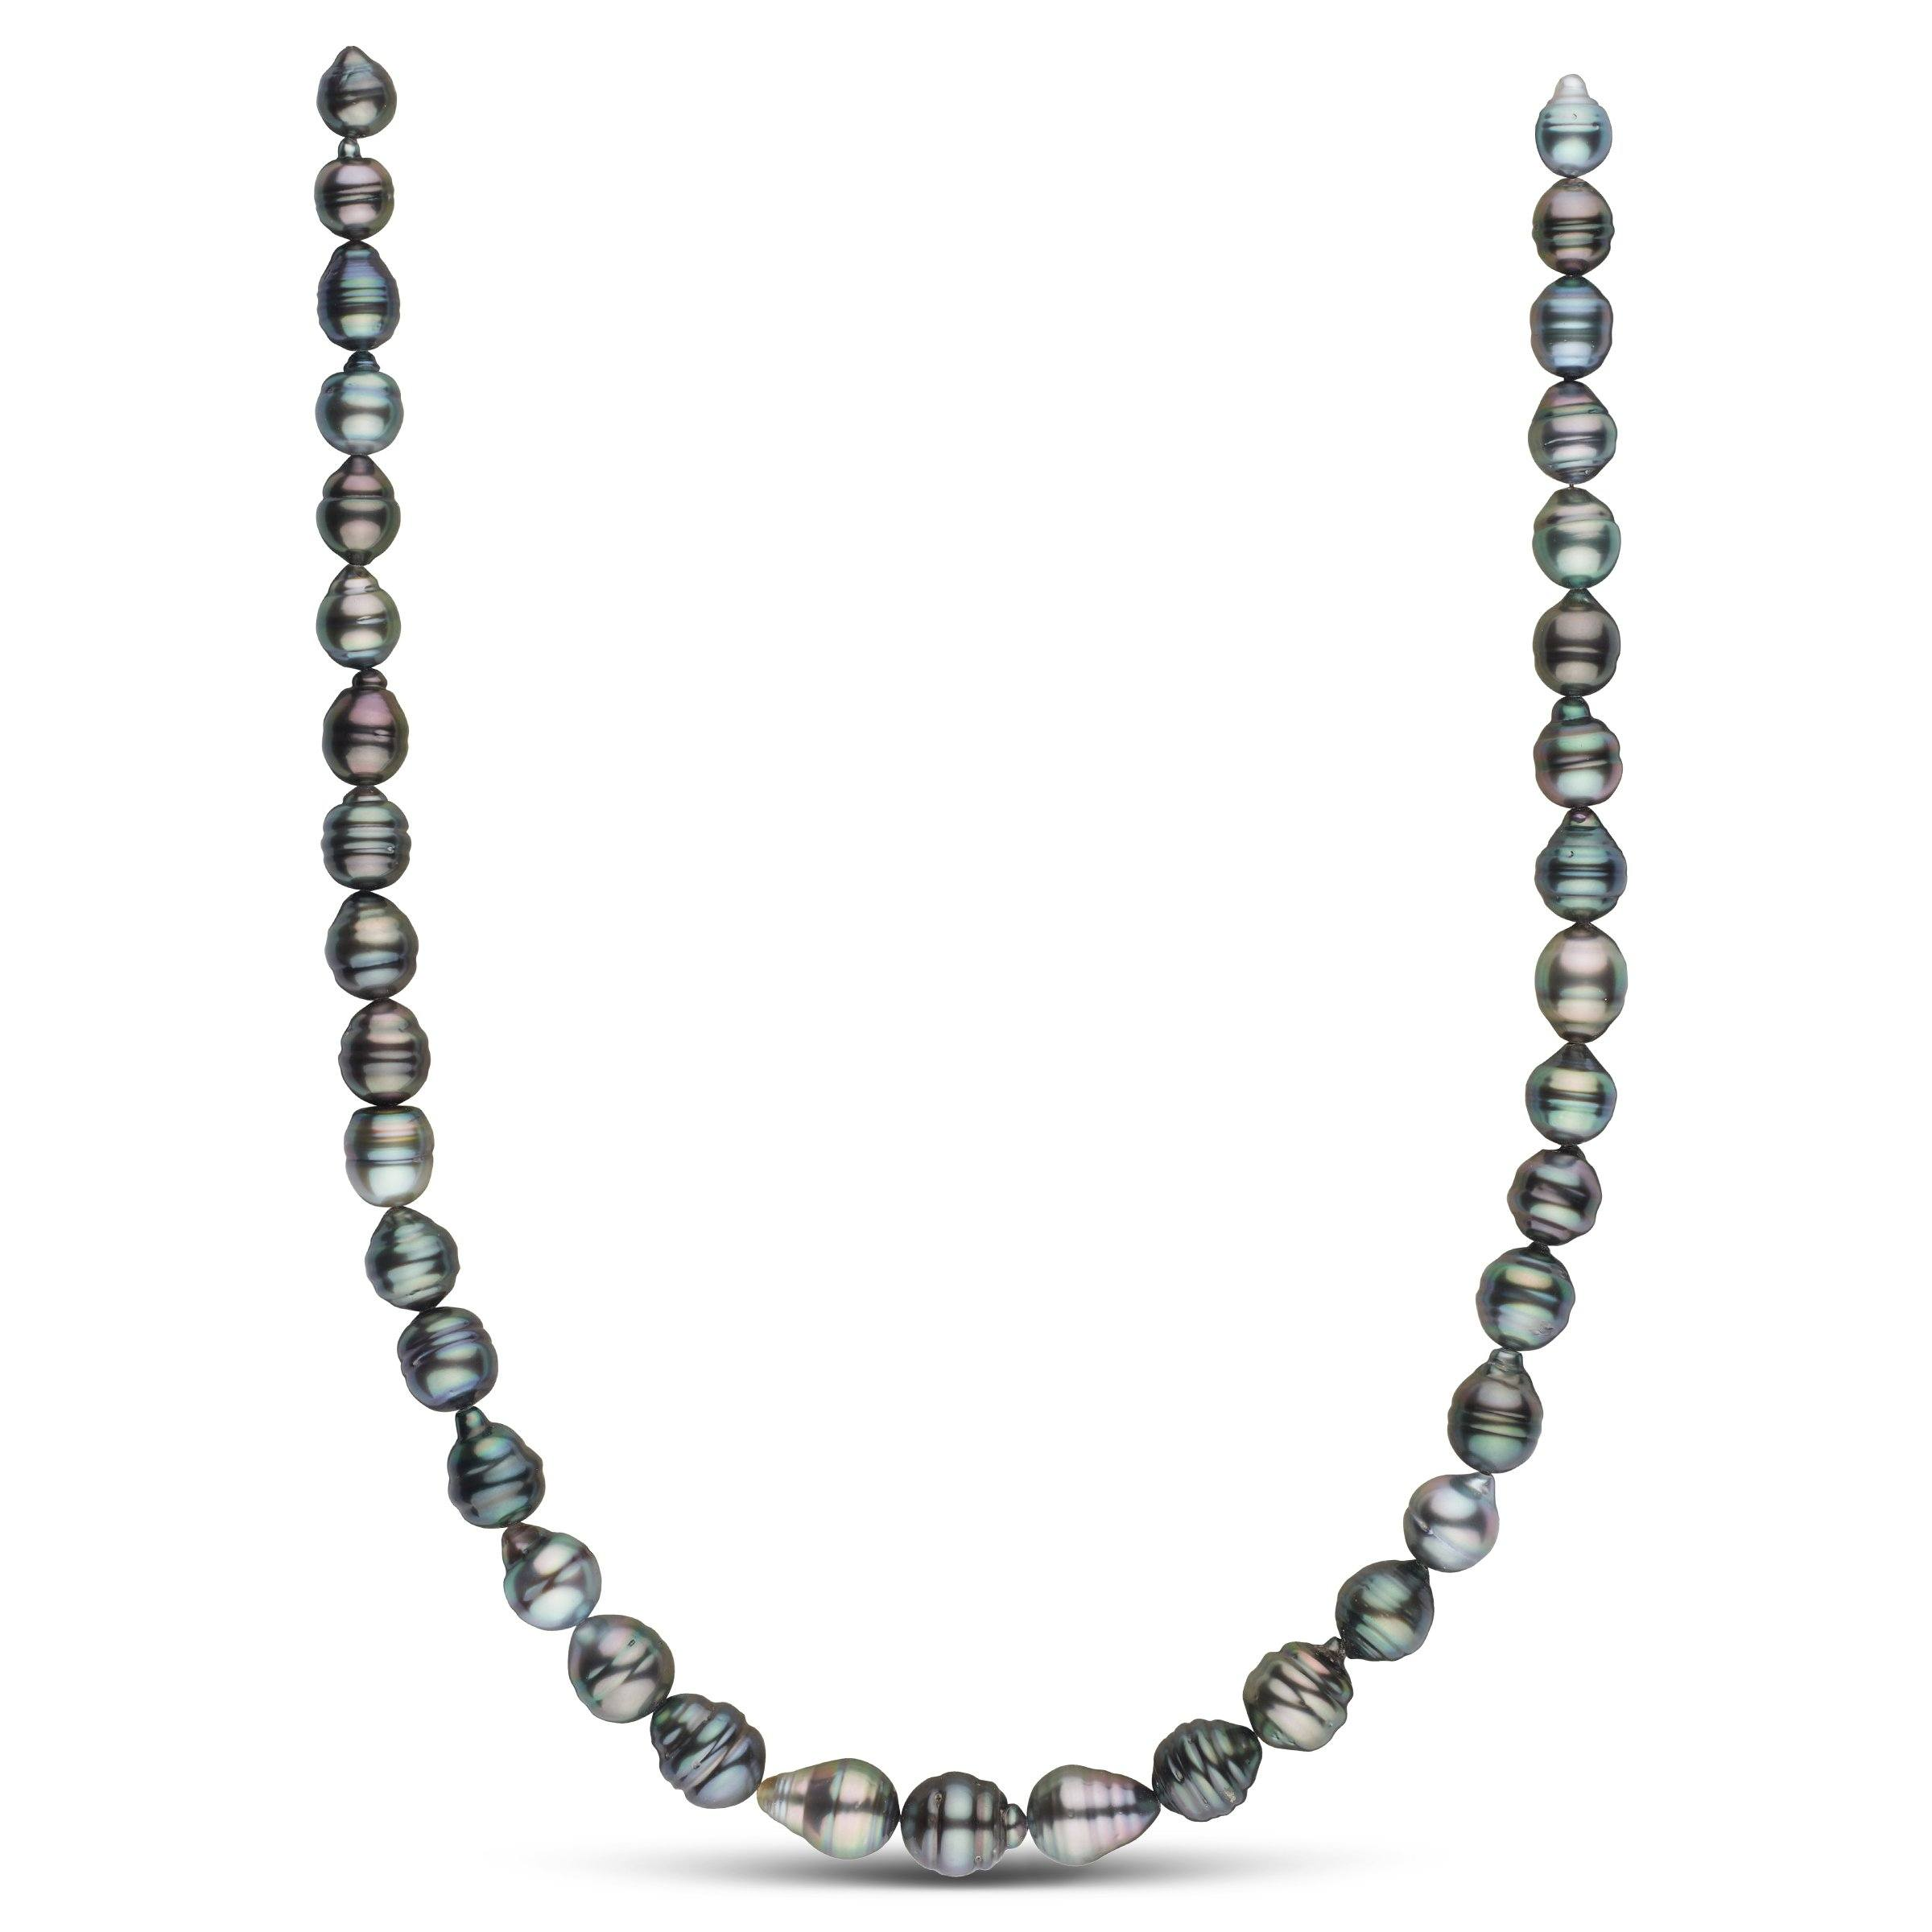 8.2-10.4 mm AA+ Tahitian Baroque Pearl Necklace